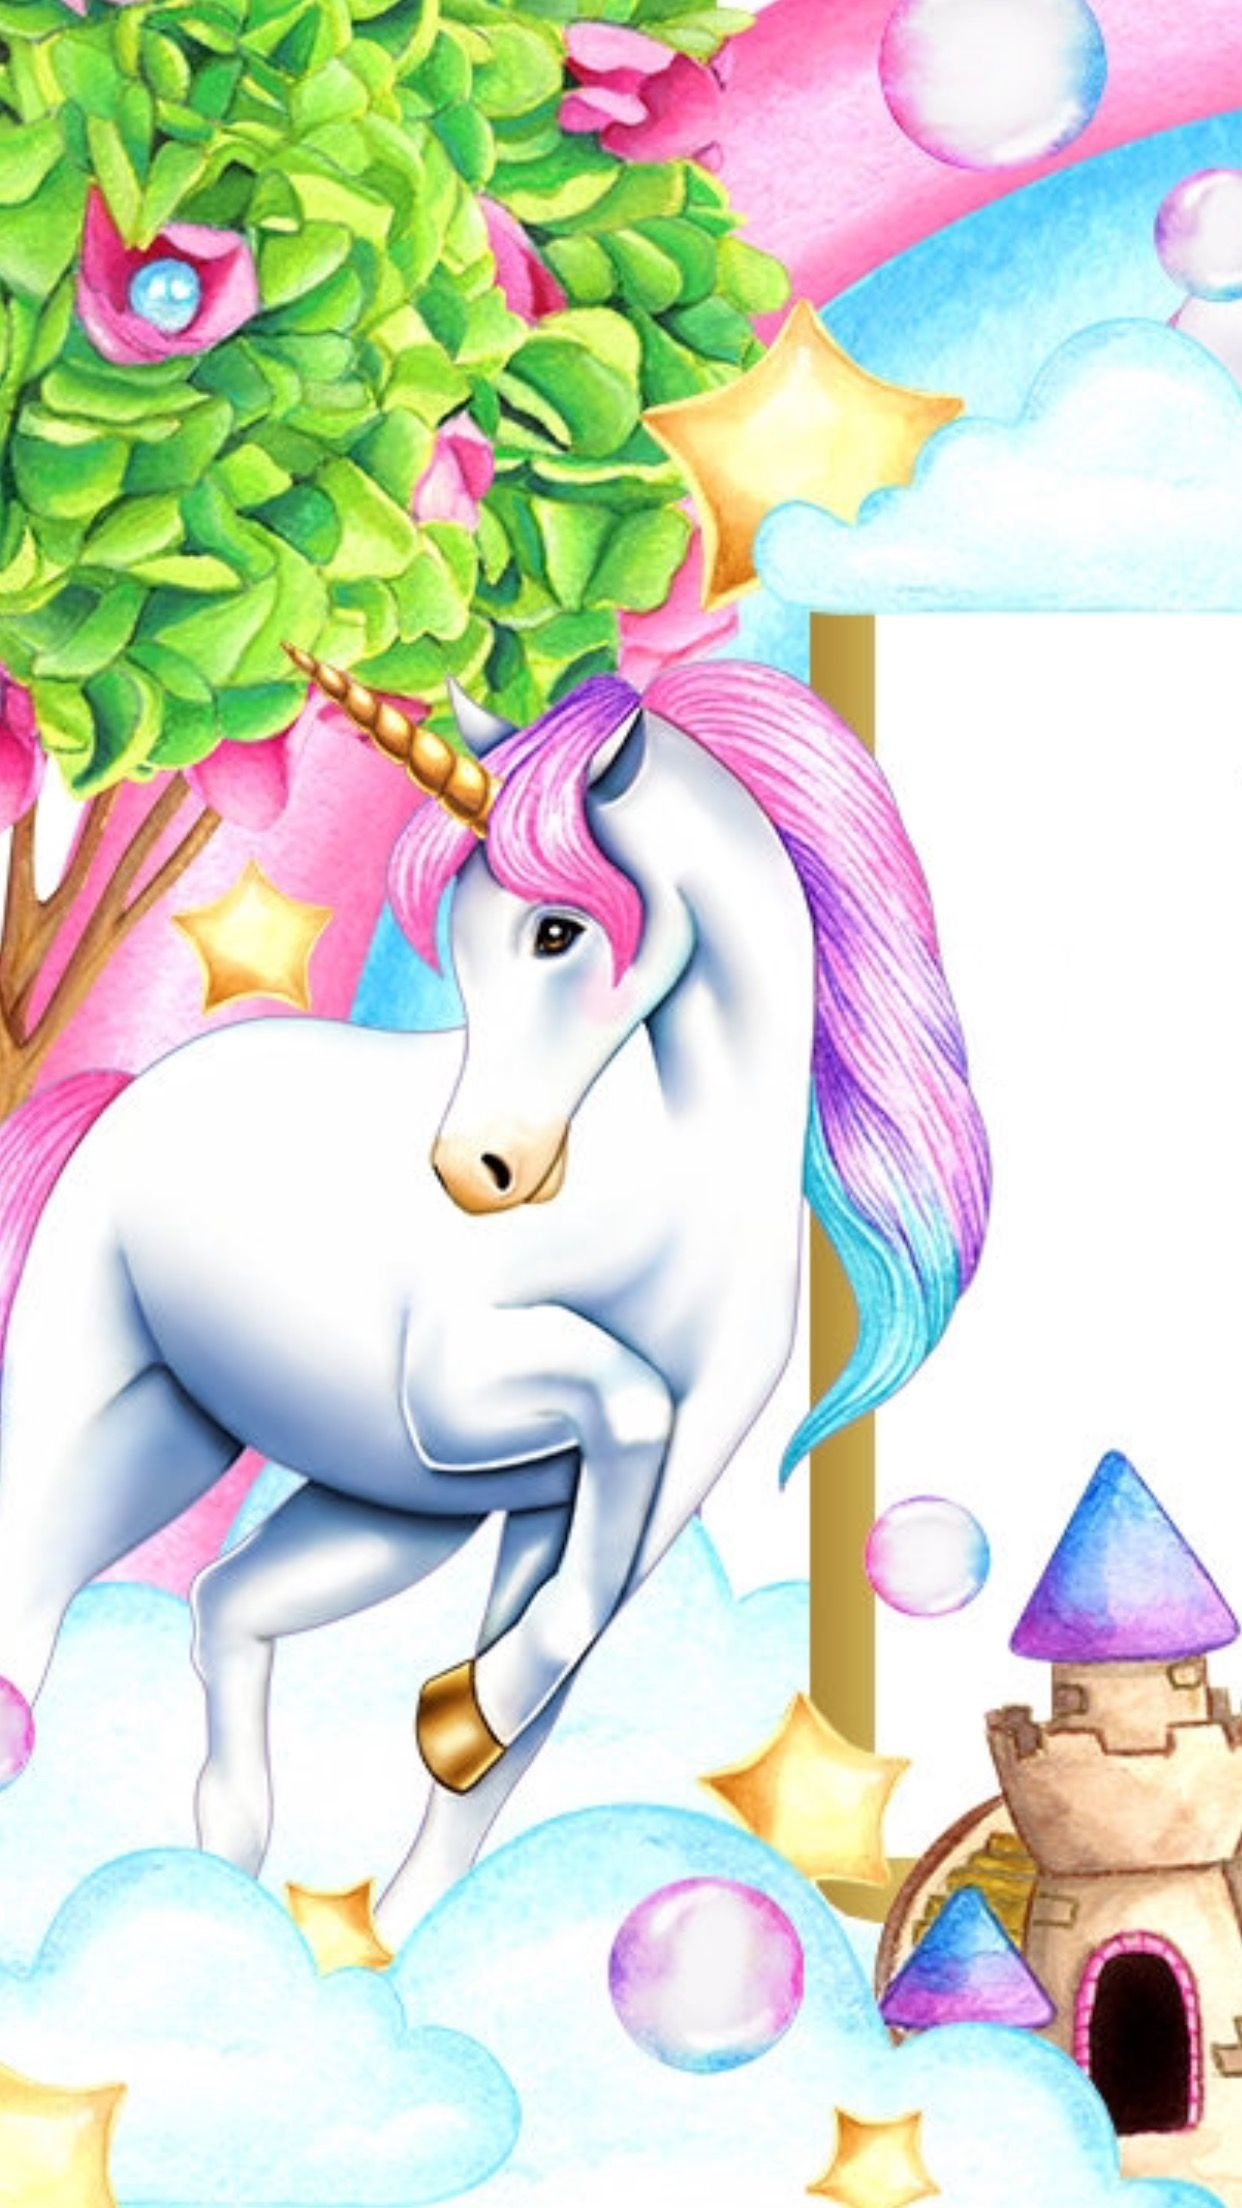 Free Download 73 Cartoon Unicorn Wallpapers On Wallpaperplay